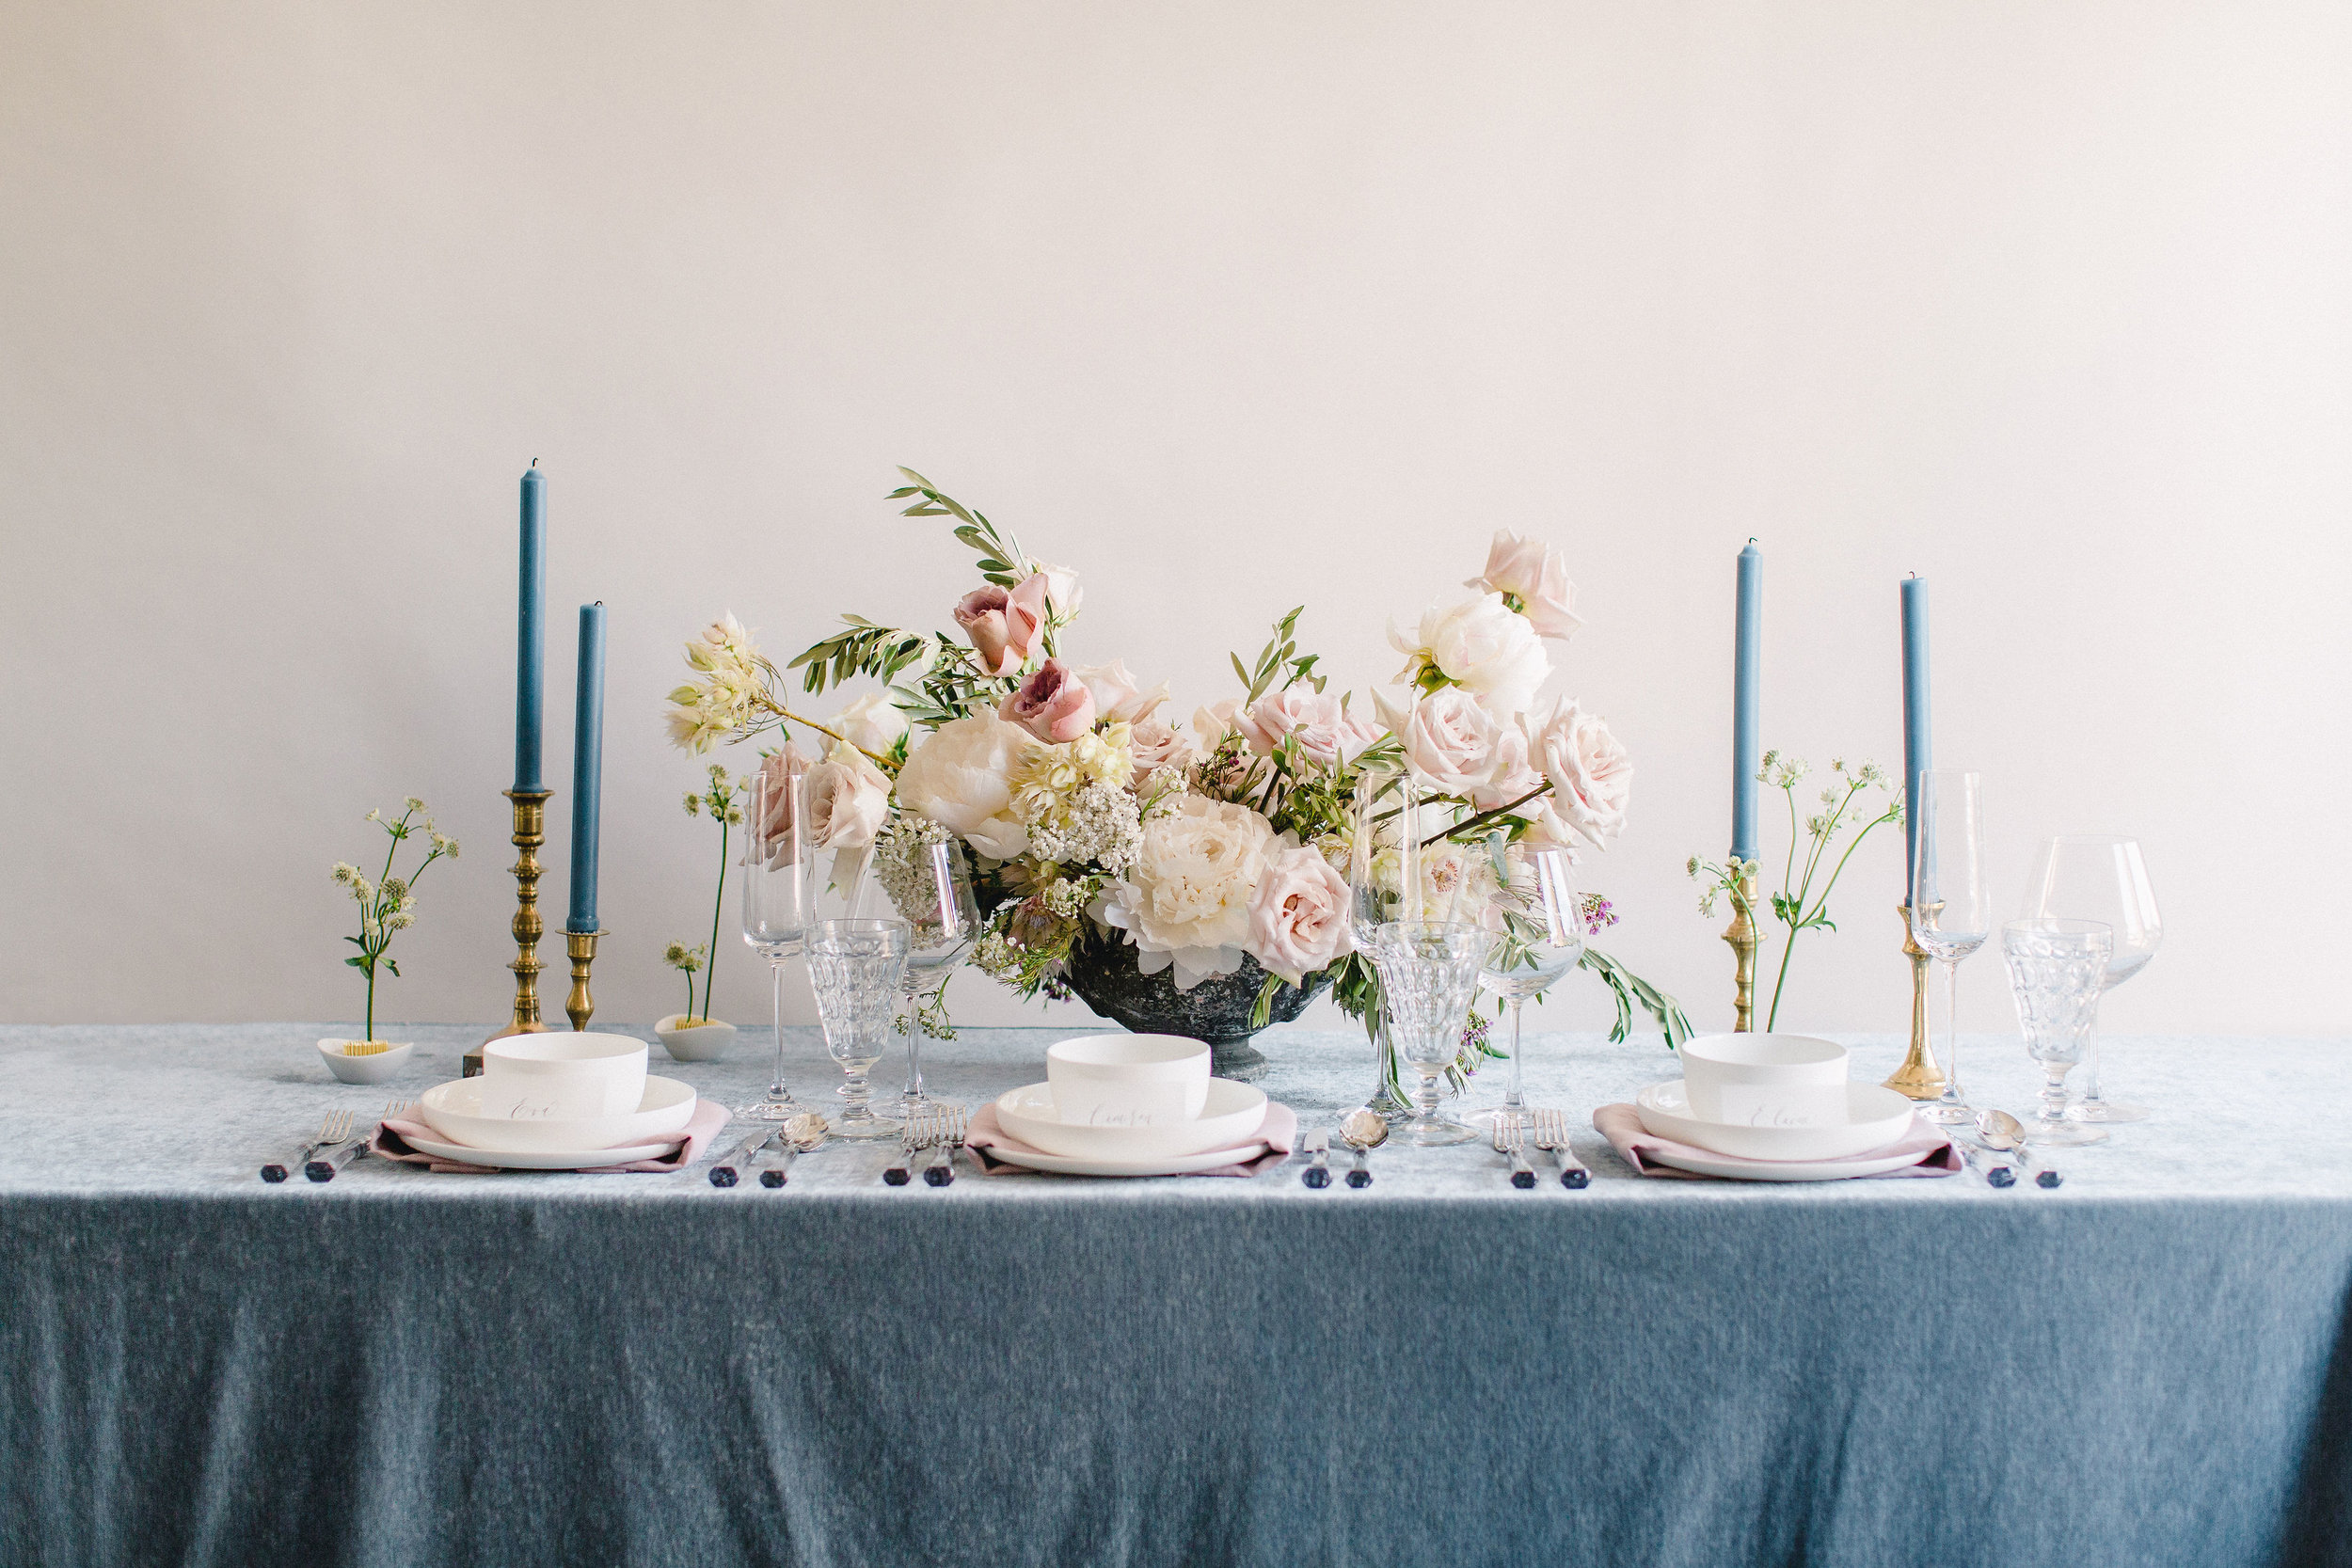 French blue and soft blush color palate combination. French blue taper candles and floral frogs as accents. Houston, TX. Floral & Design by Maxit Flower Design, Photography:  Alicia Yarrish